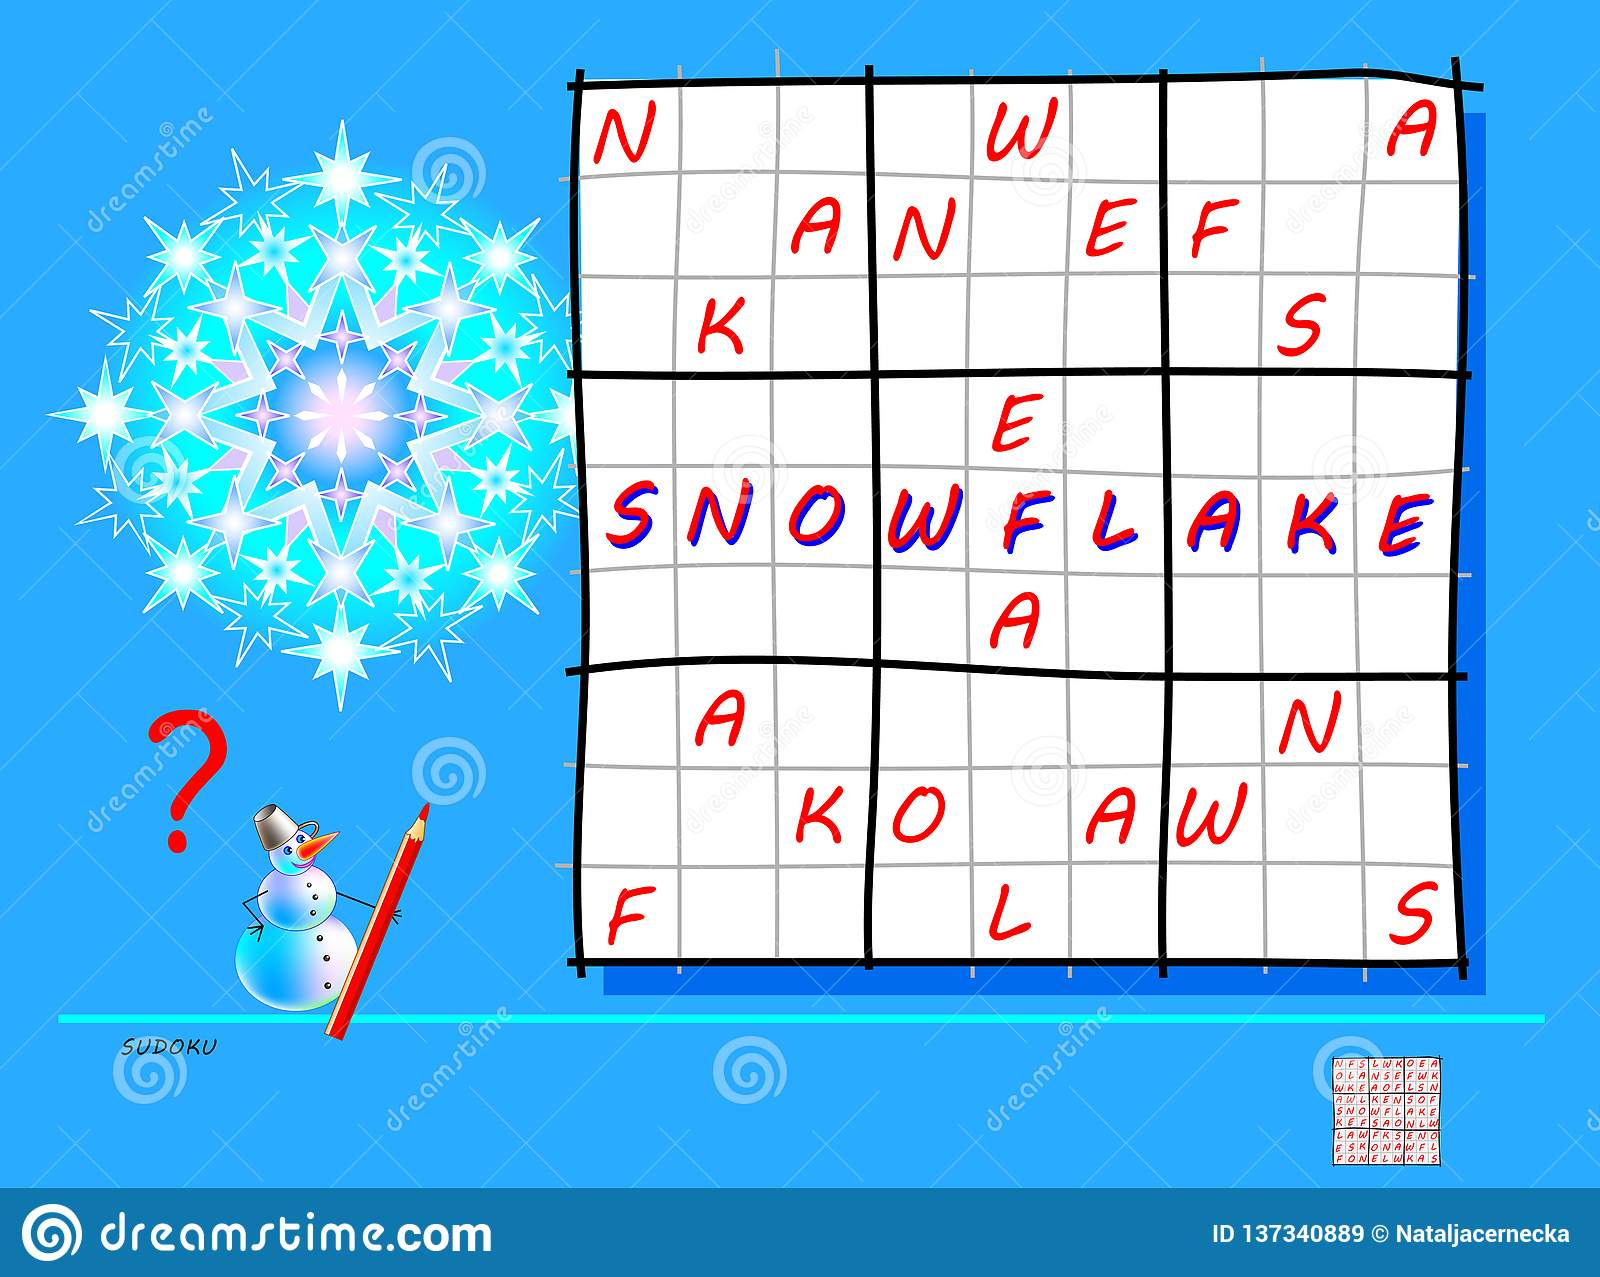 Logic Sudoku Game. Need To Complete The Puzzle Using The